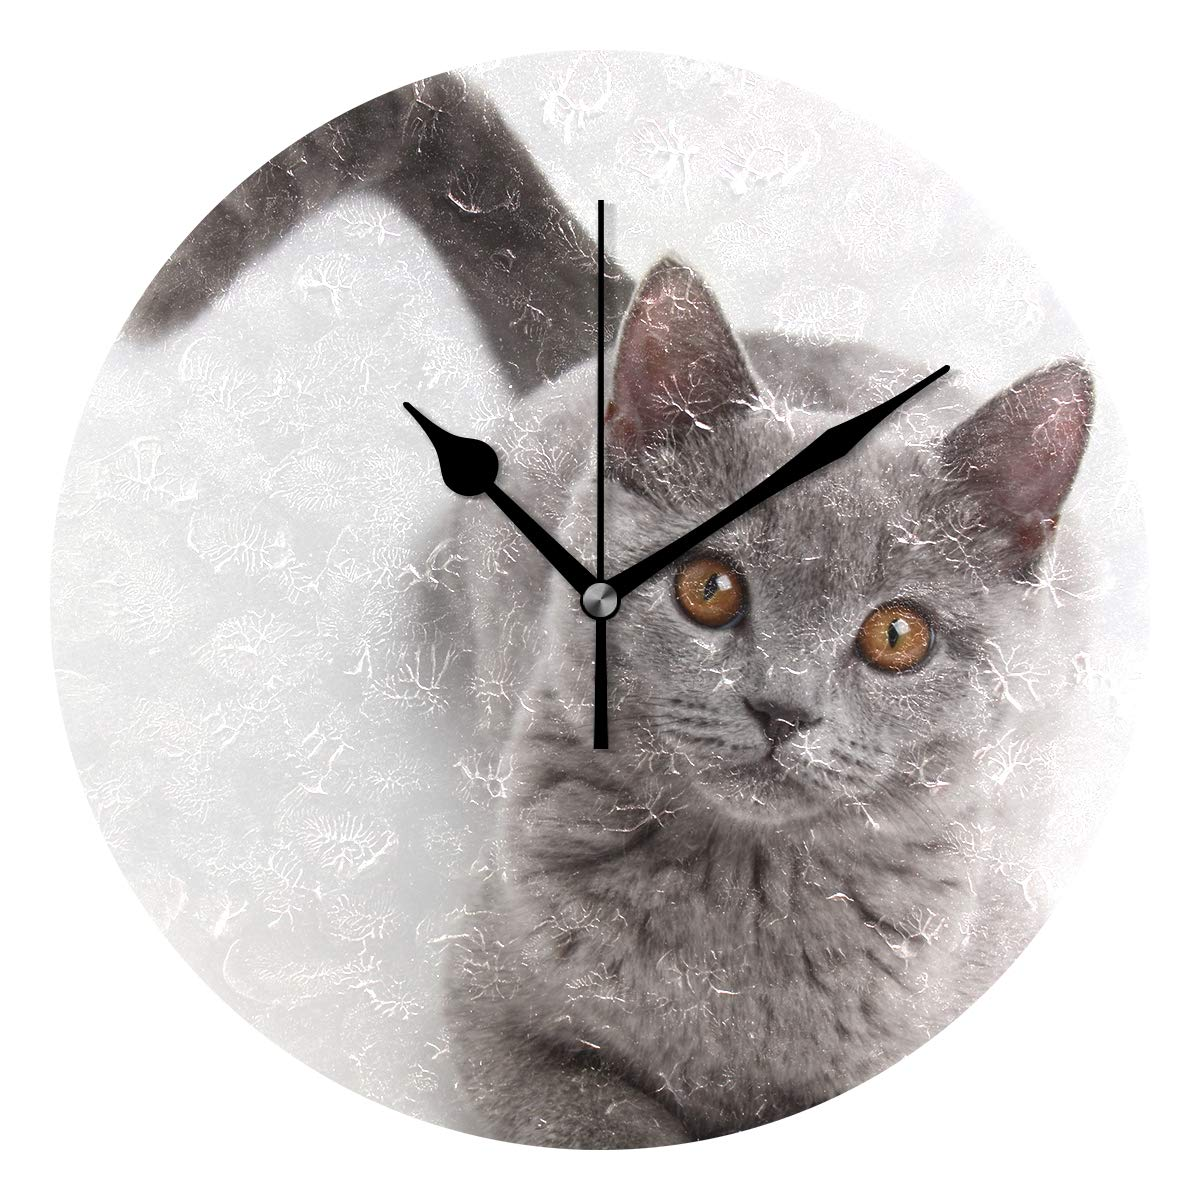 Amazon.com: Amehome Dumbfounded Cat Round Acrylic Wall Clock Non Ticking Silent Clock Art for Living Room Kitchen Bedroom: Home & Kitchen